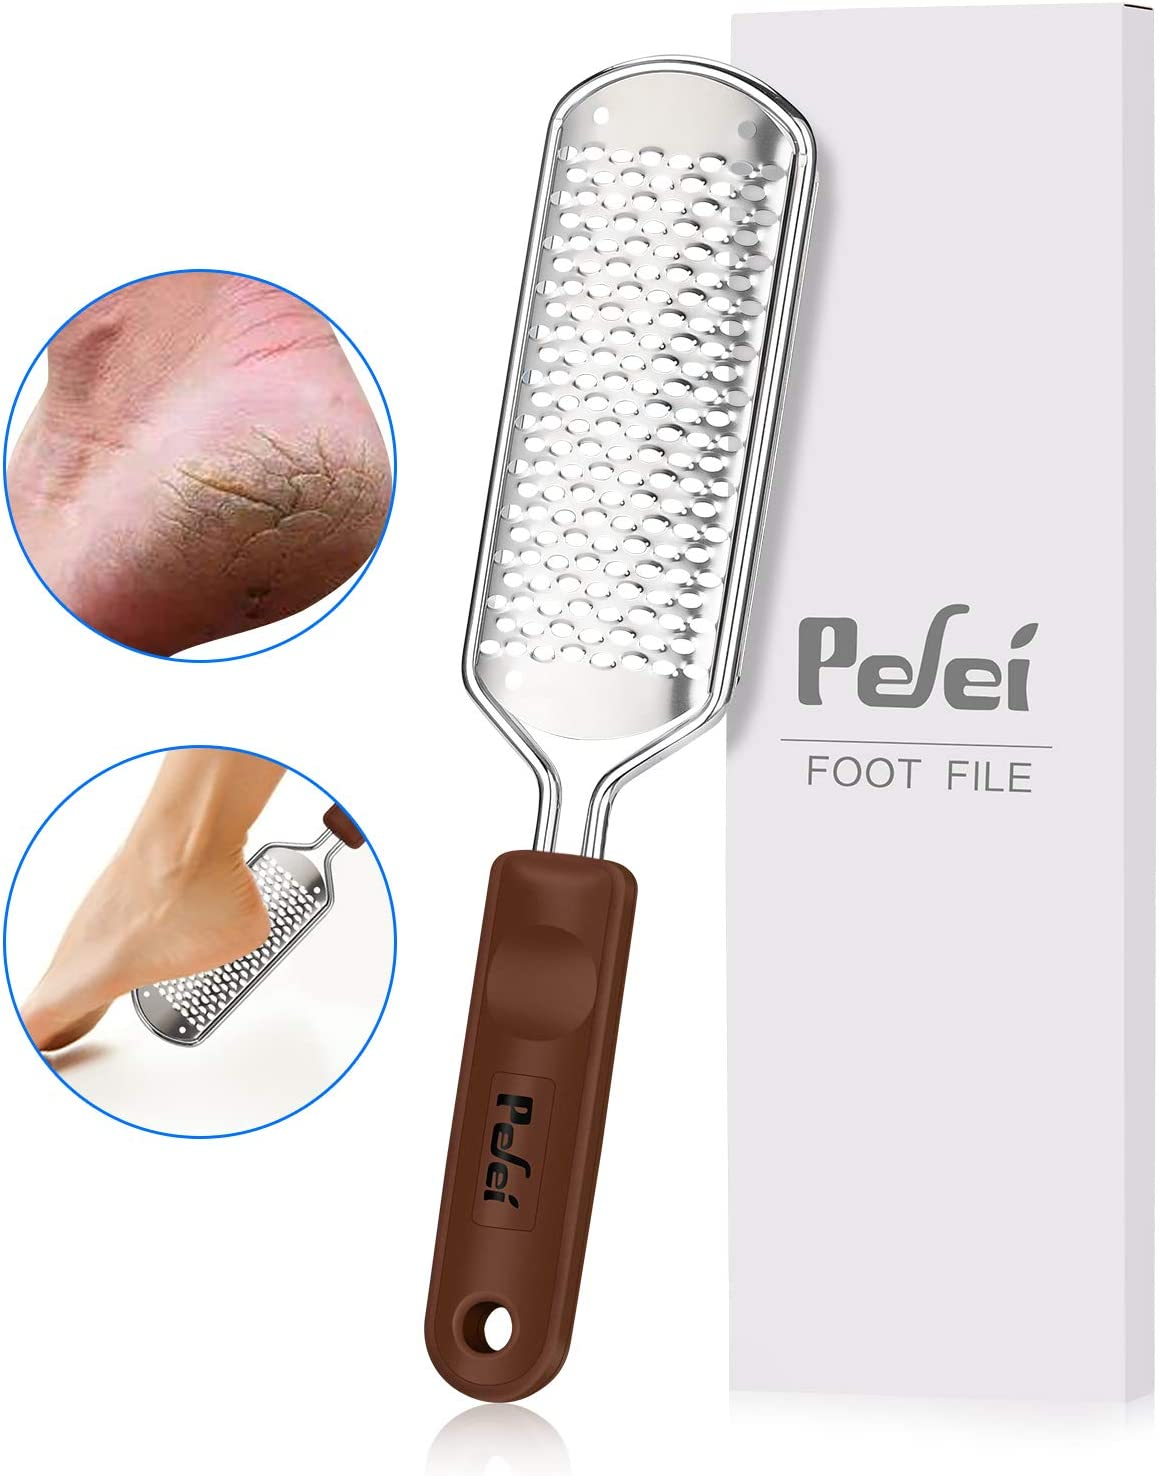 Foot File Callus Remover, Pefei Colossal Professional Stainless Steel Detachable Foot Scrubber, Hard Skin Removers Pedicure Rasp for Wet and Dry Feet